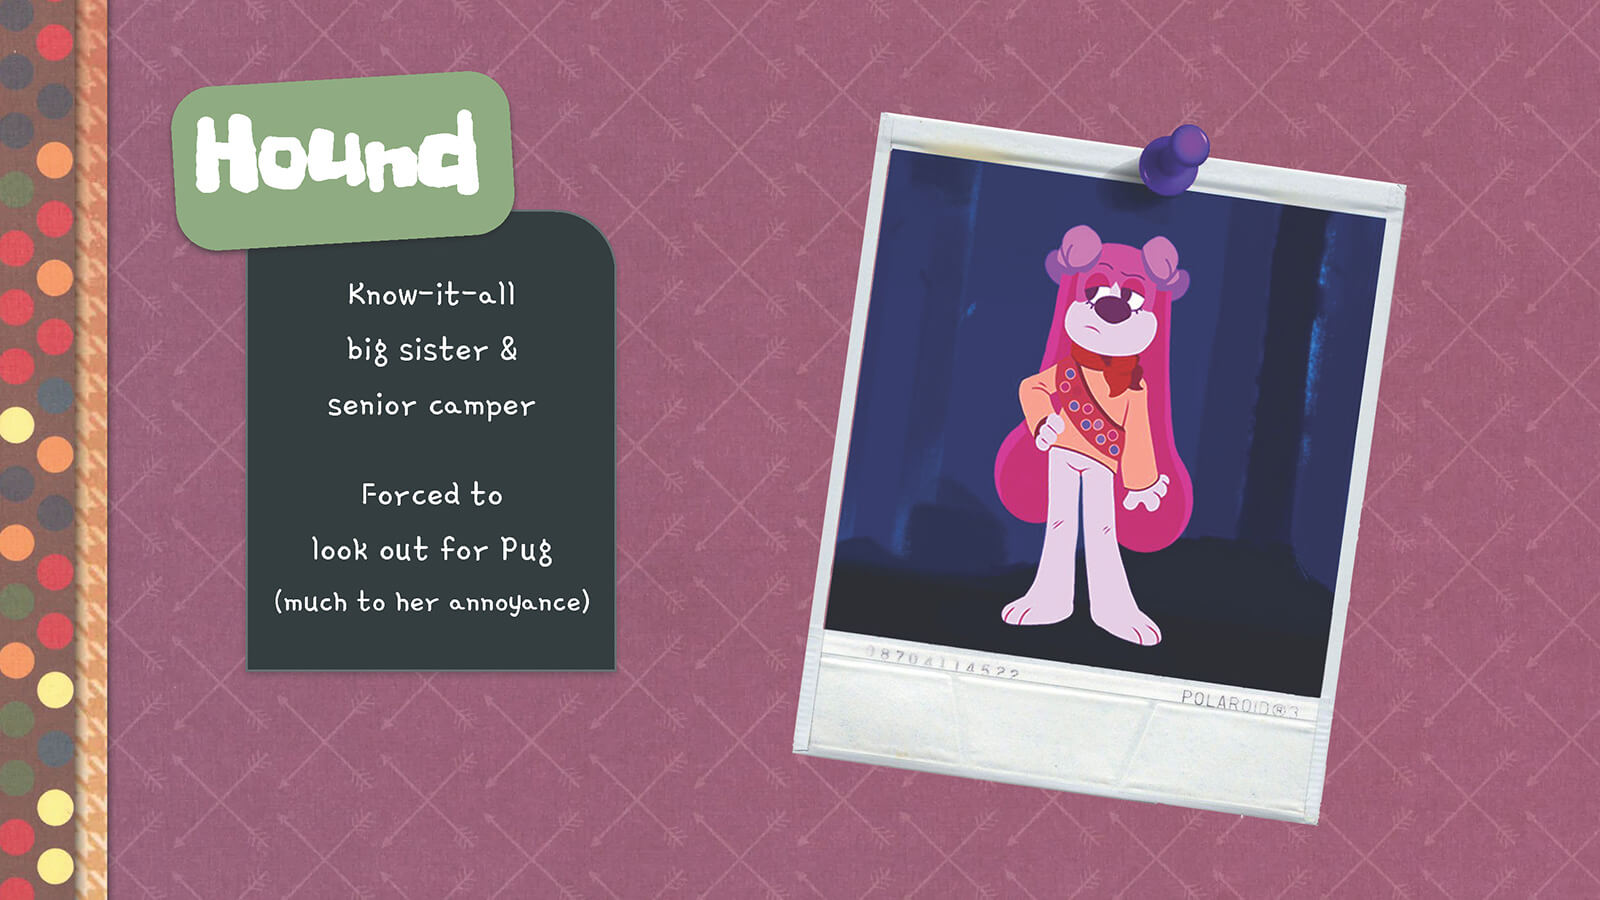 Description and look of the character Hound.